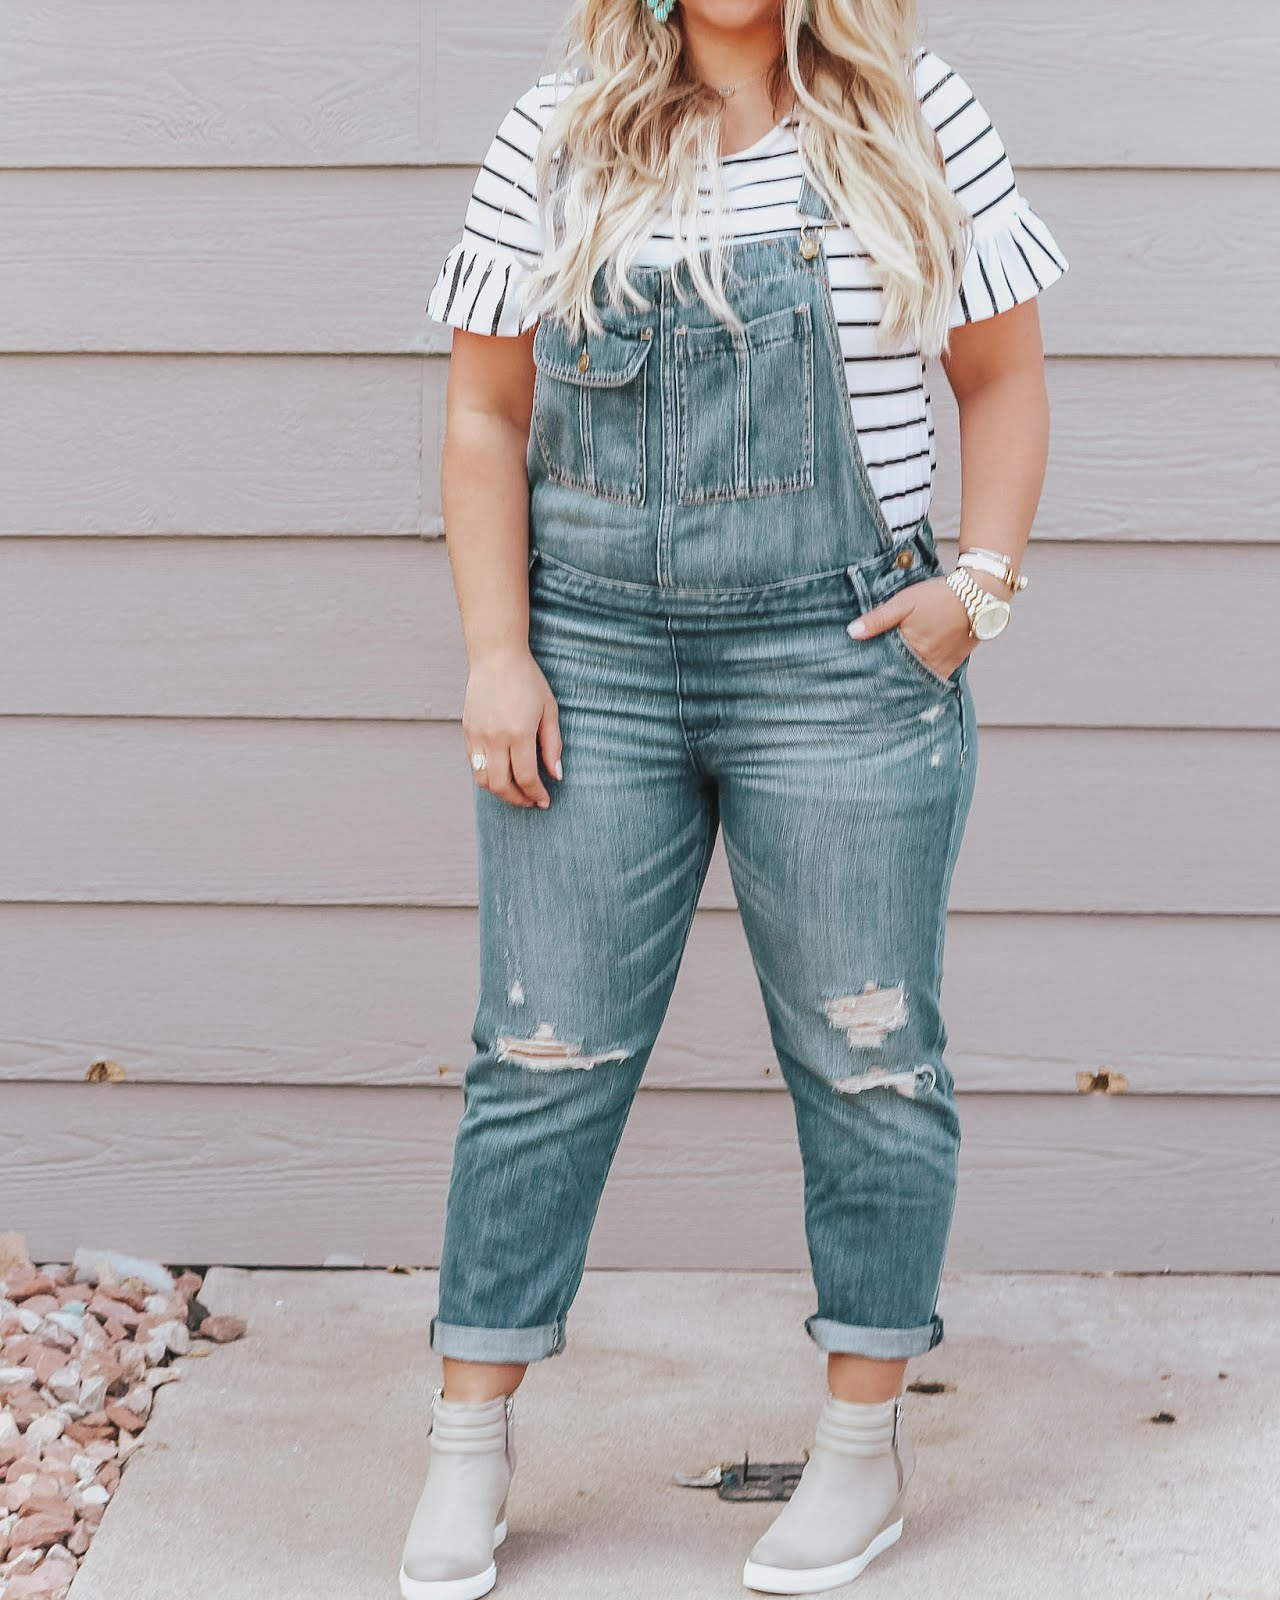 Denim Overalls styled by popular Denver fashion blogger, Delayna Denaye